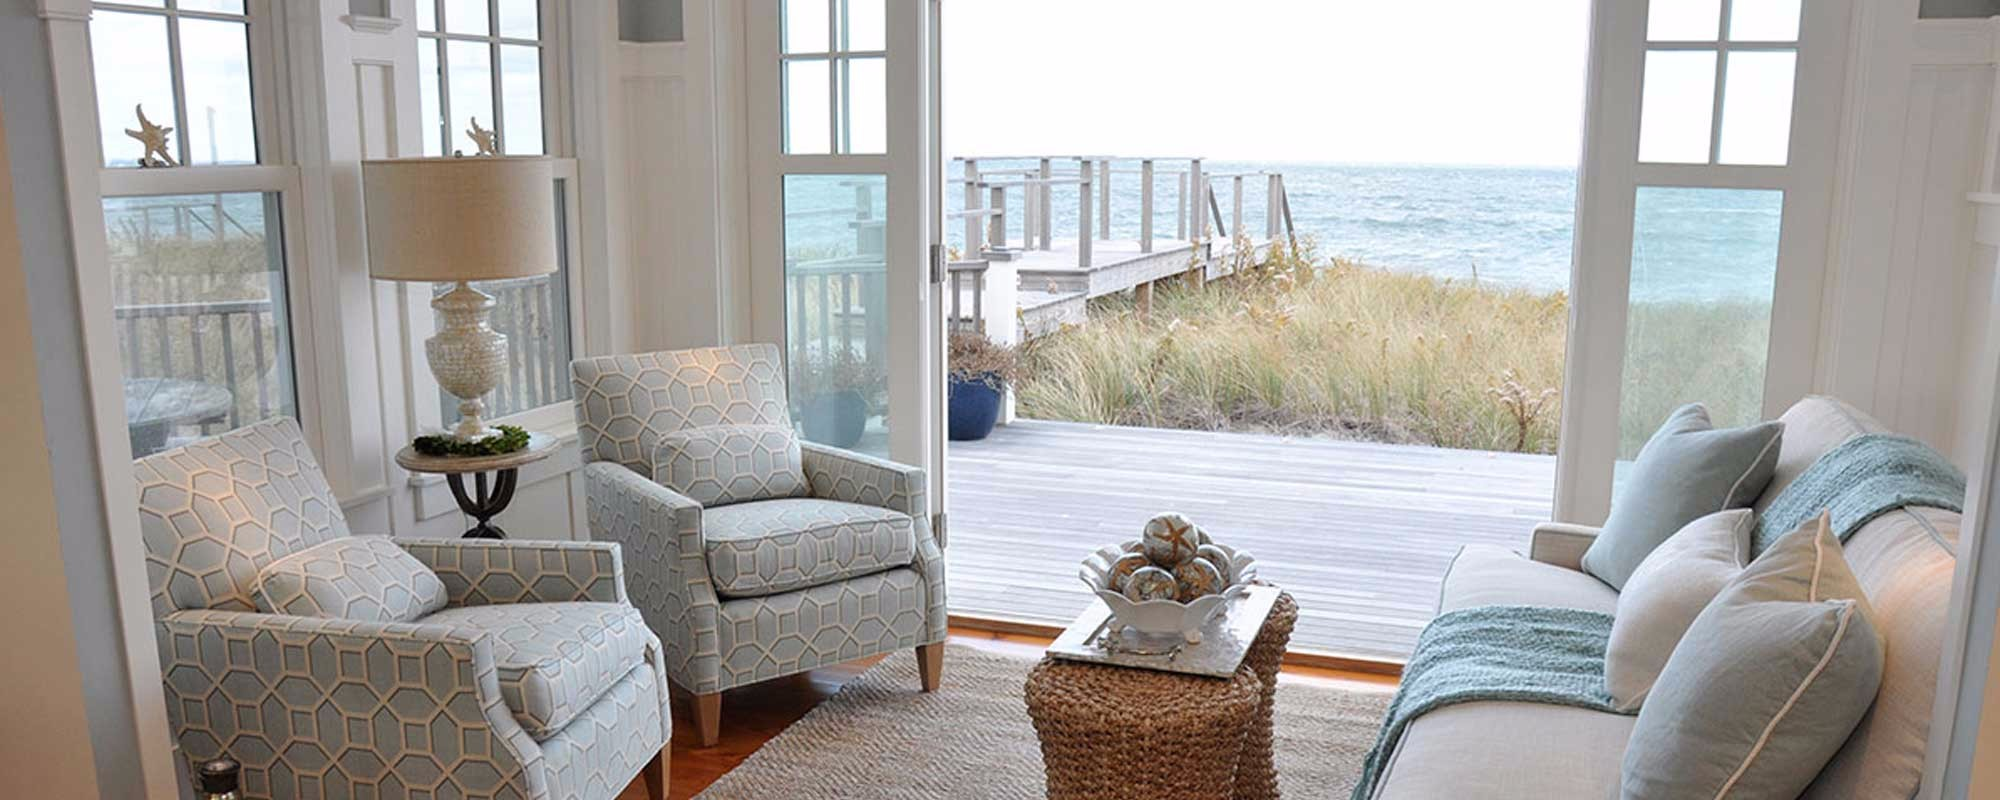 Interior design cape cod ma casabella interiors for Interieur design